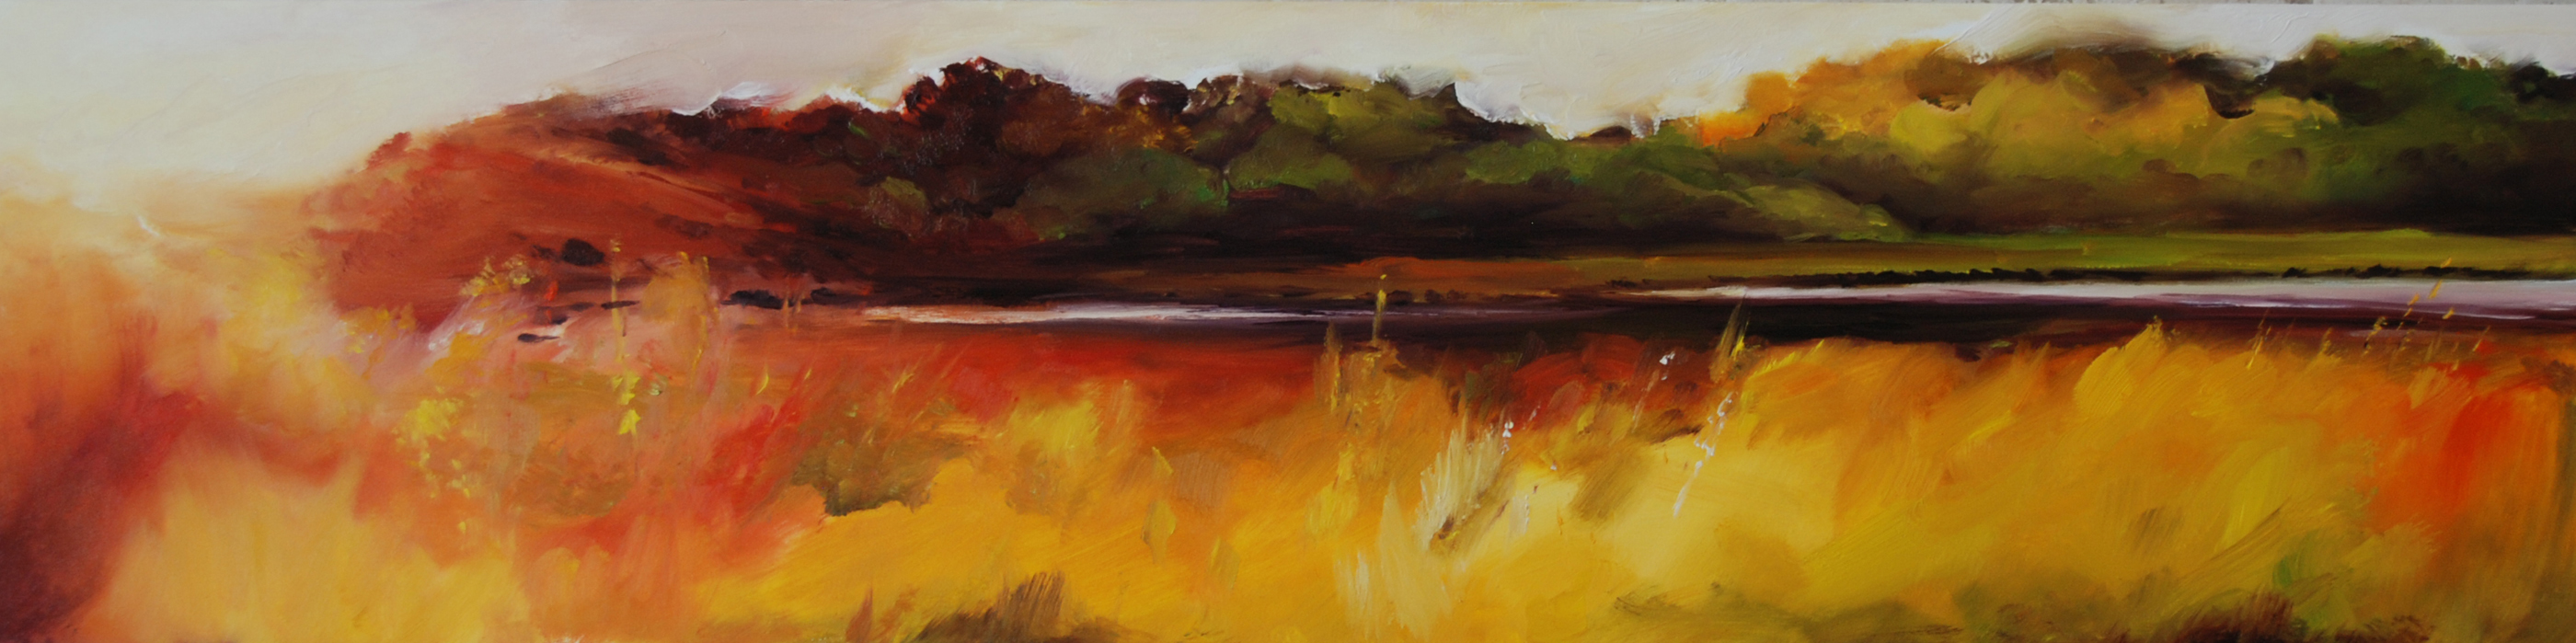 Deep Haven Minnesota near Lake Minnetonka landscape painting by Francene Christianson